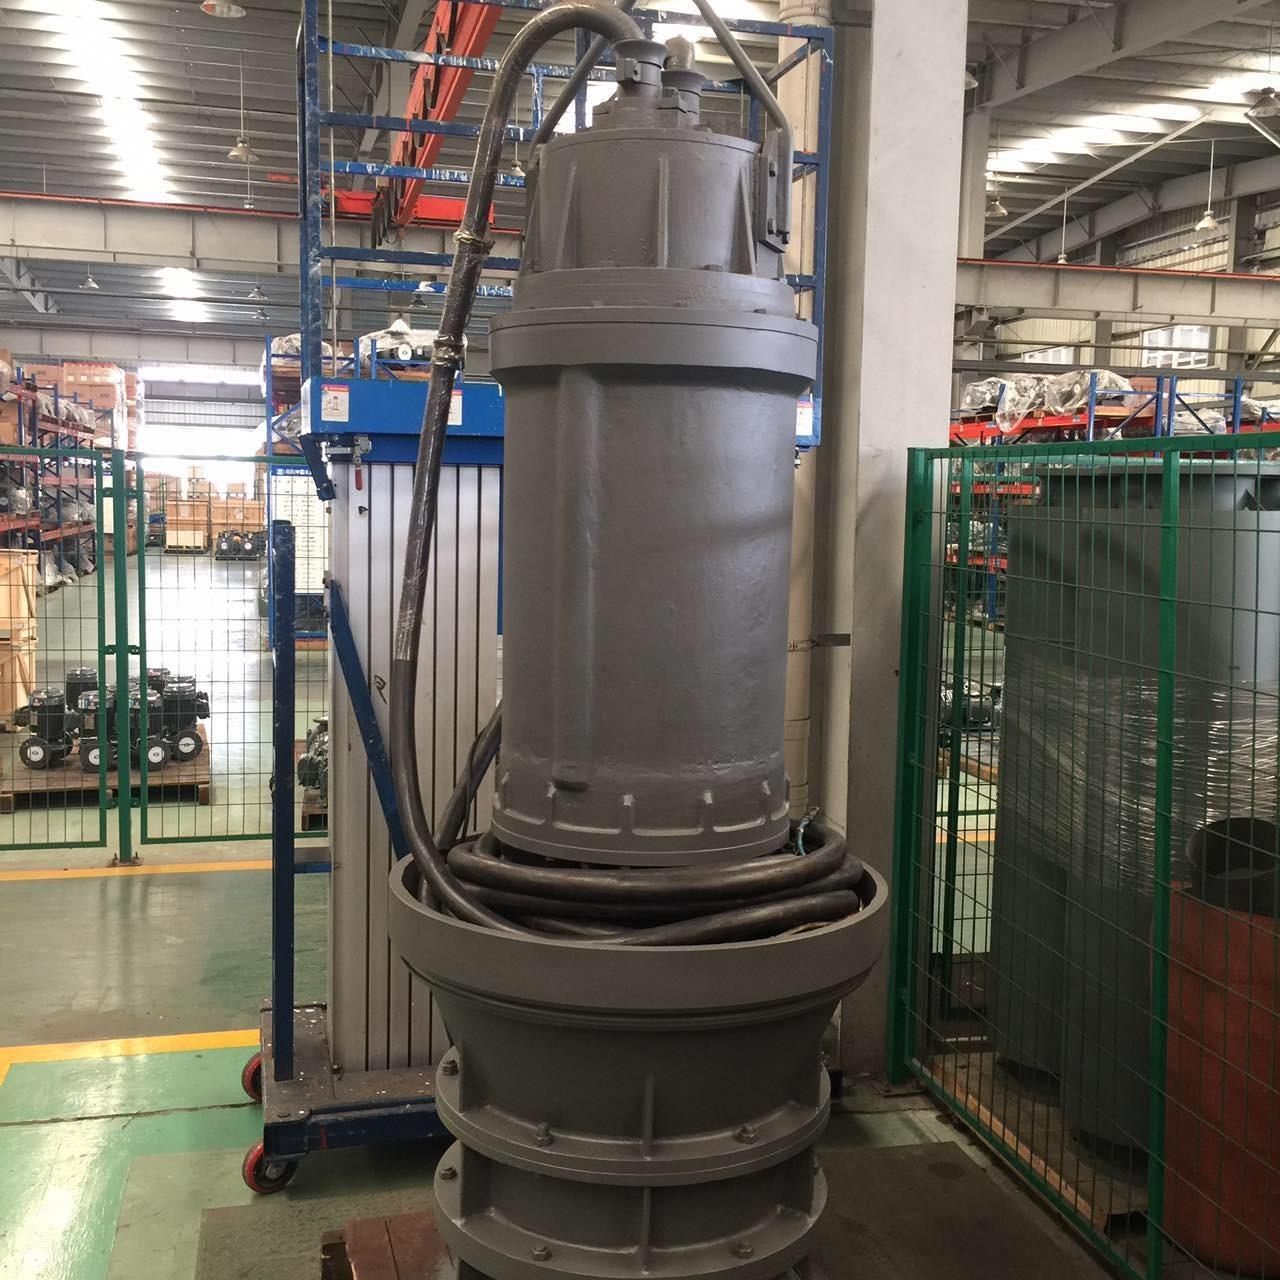 Axial Flow Turbine Submersible Sewage Pump For Waste Water Treatment System